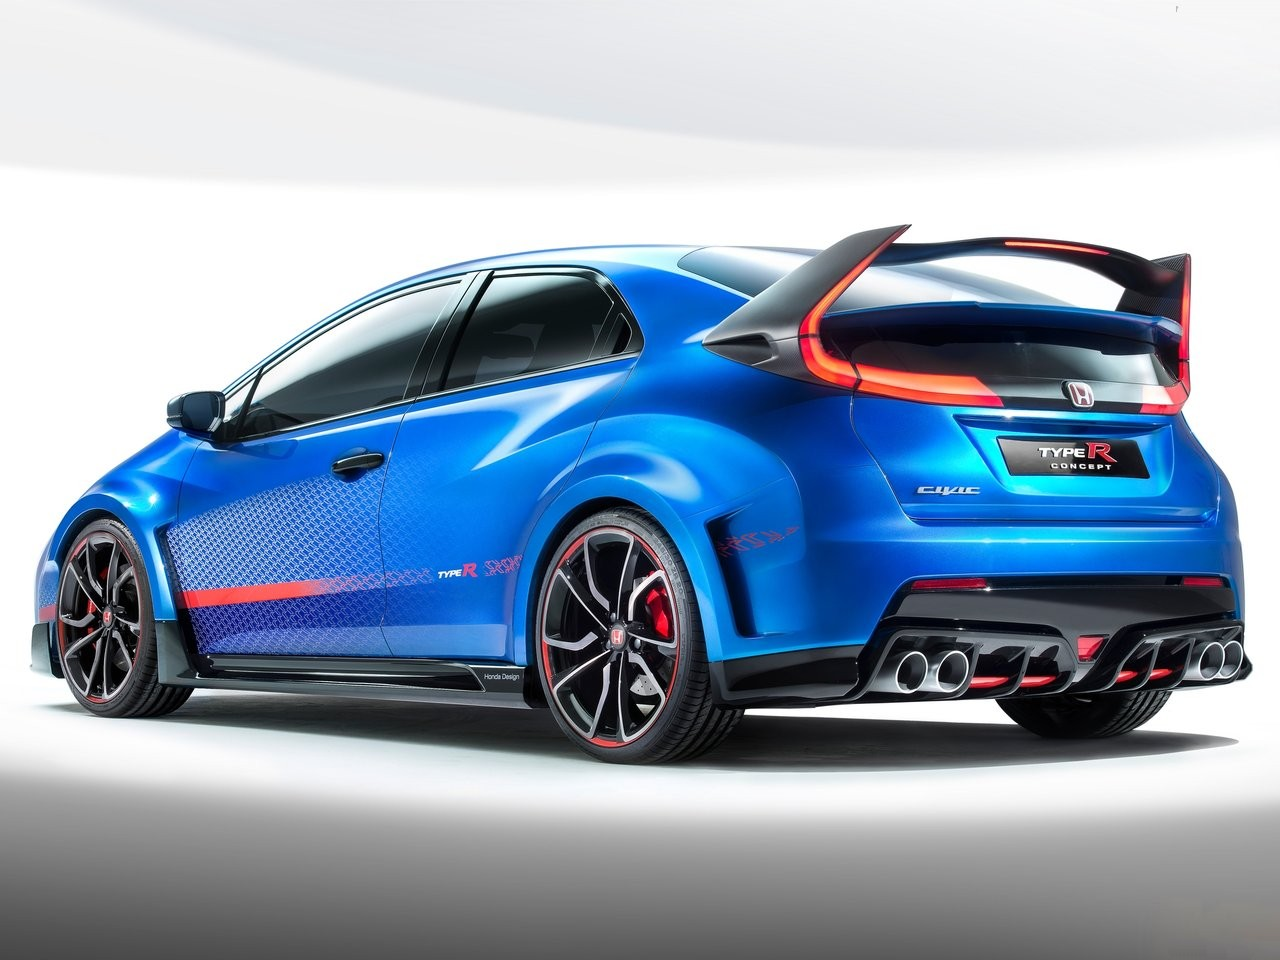 honda civic type r 2015 nouvelle livr e pour le mondial de paris plan te. Black Bedroom Furniture Sets. Home Design Ideas